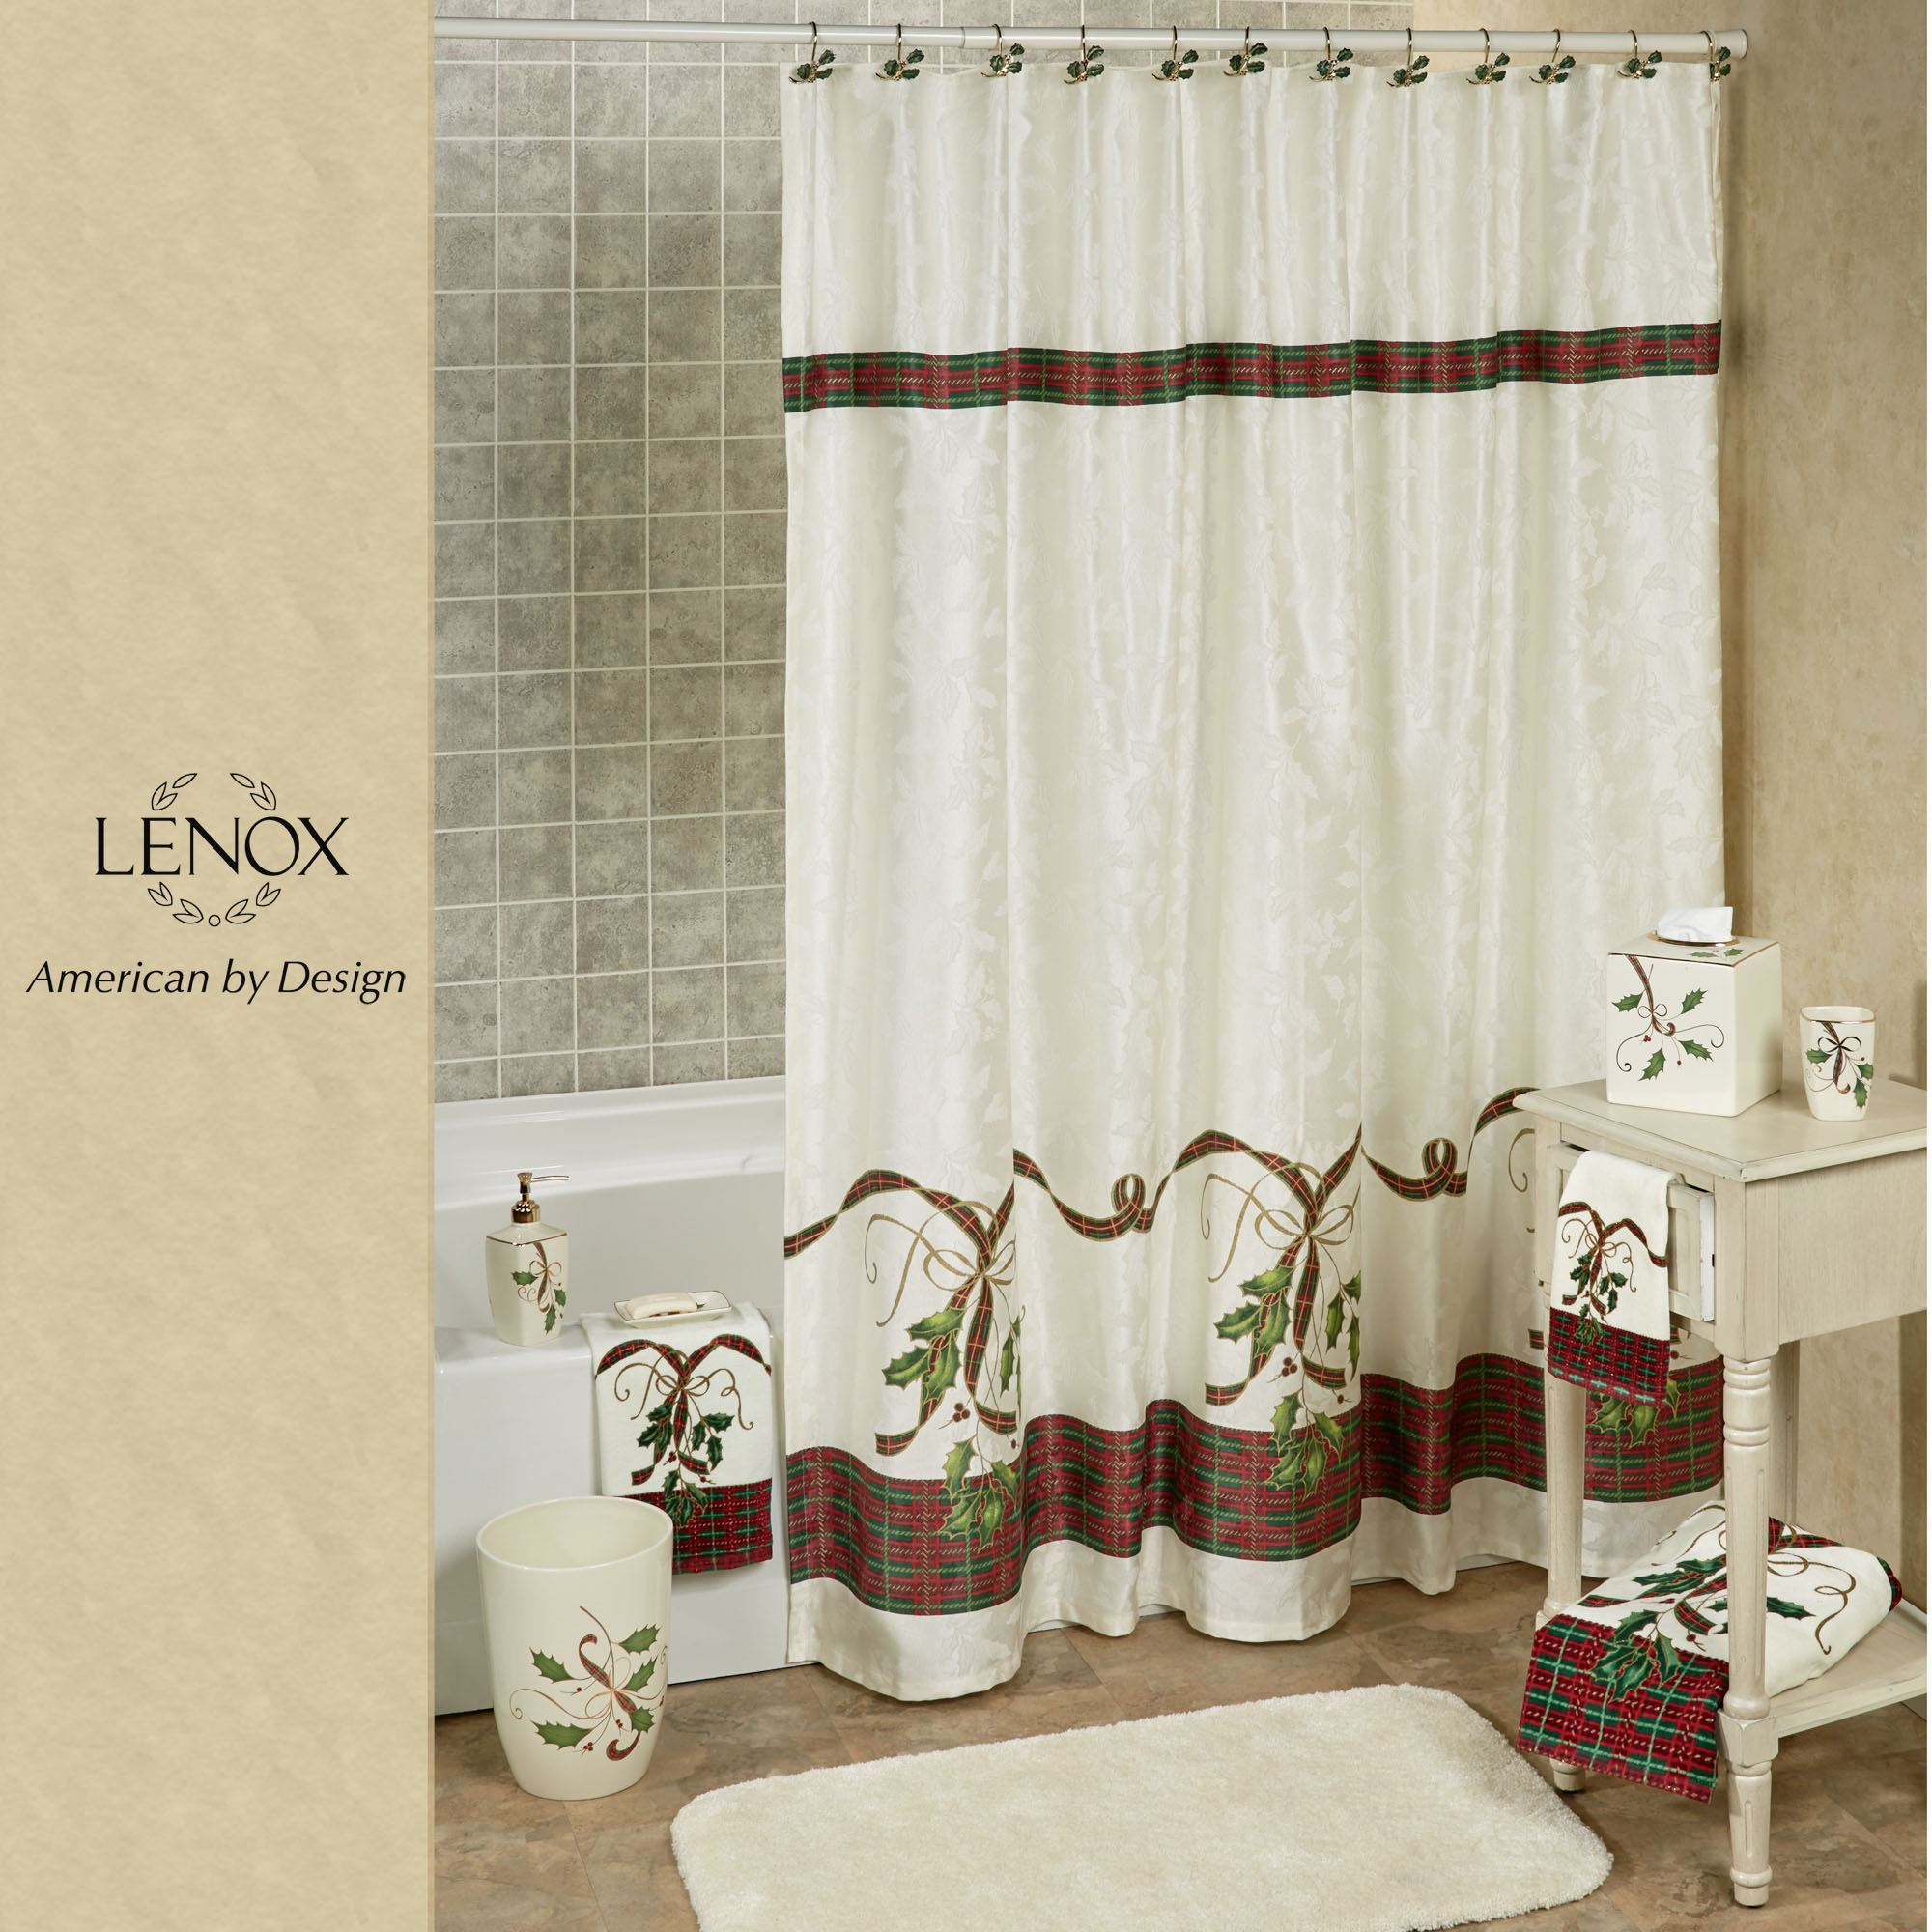 lenox christmas chair covers cover hire cambridgeshire holiday nouveau holly shower curtain ivory